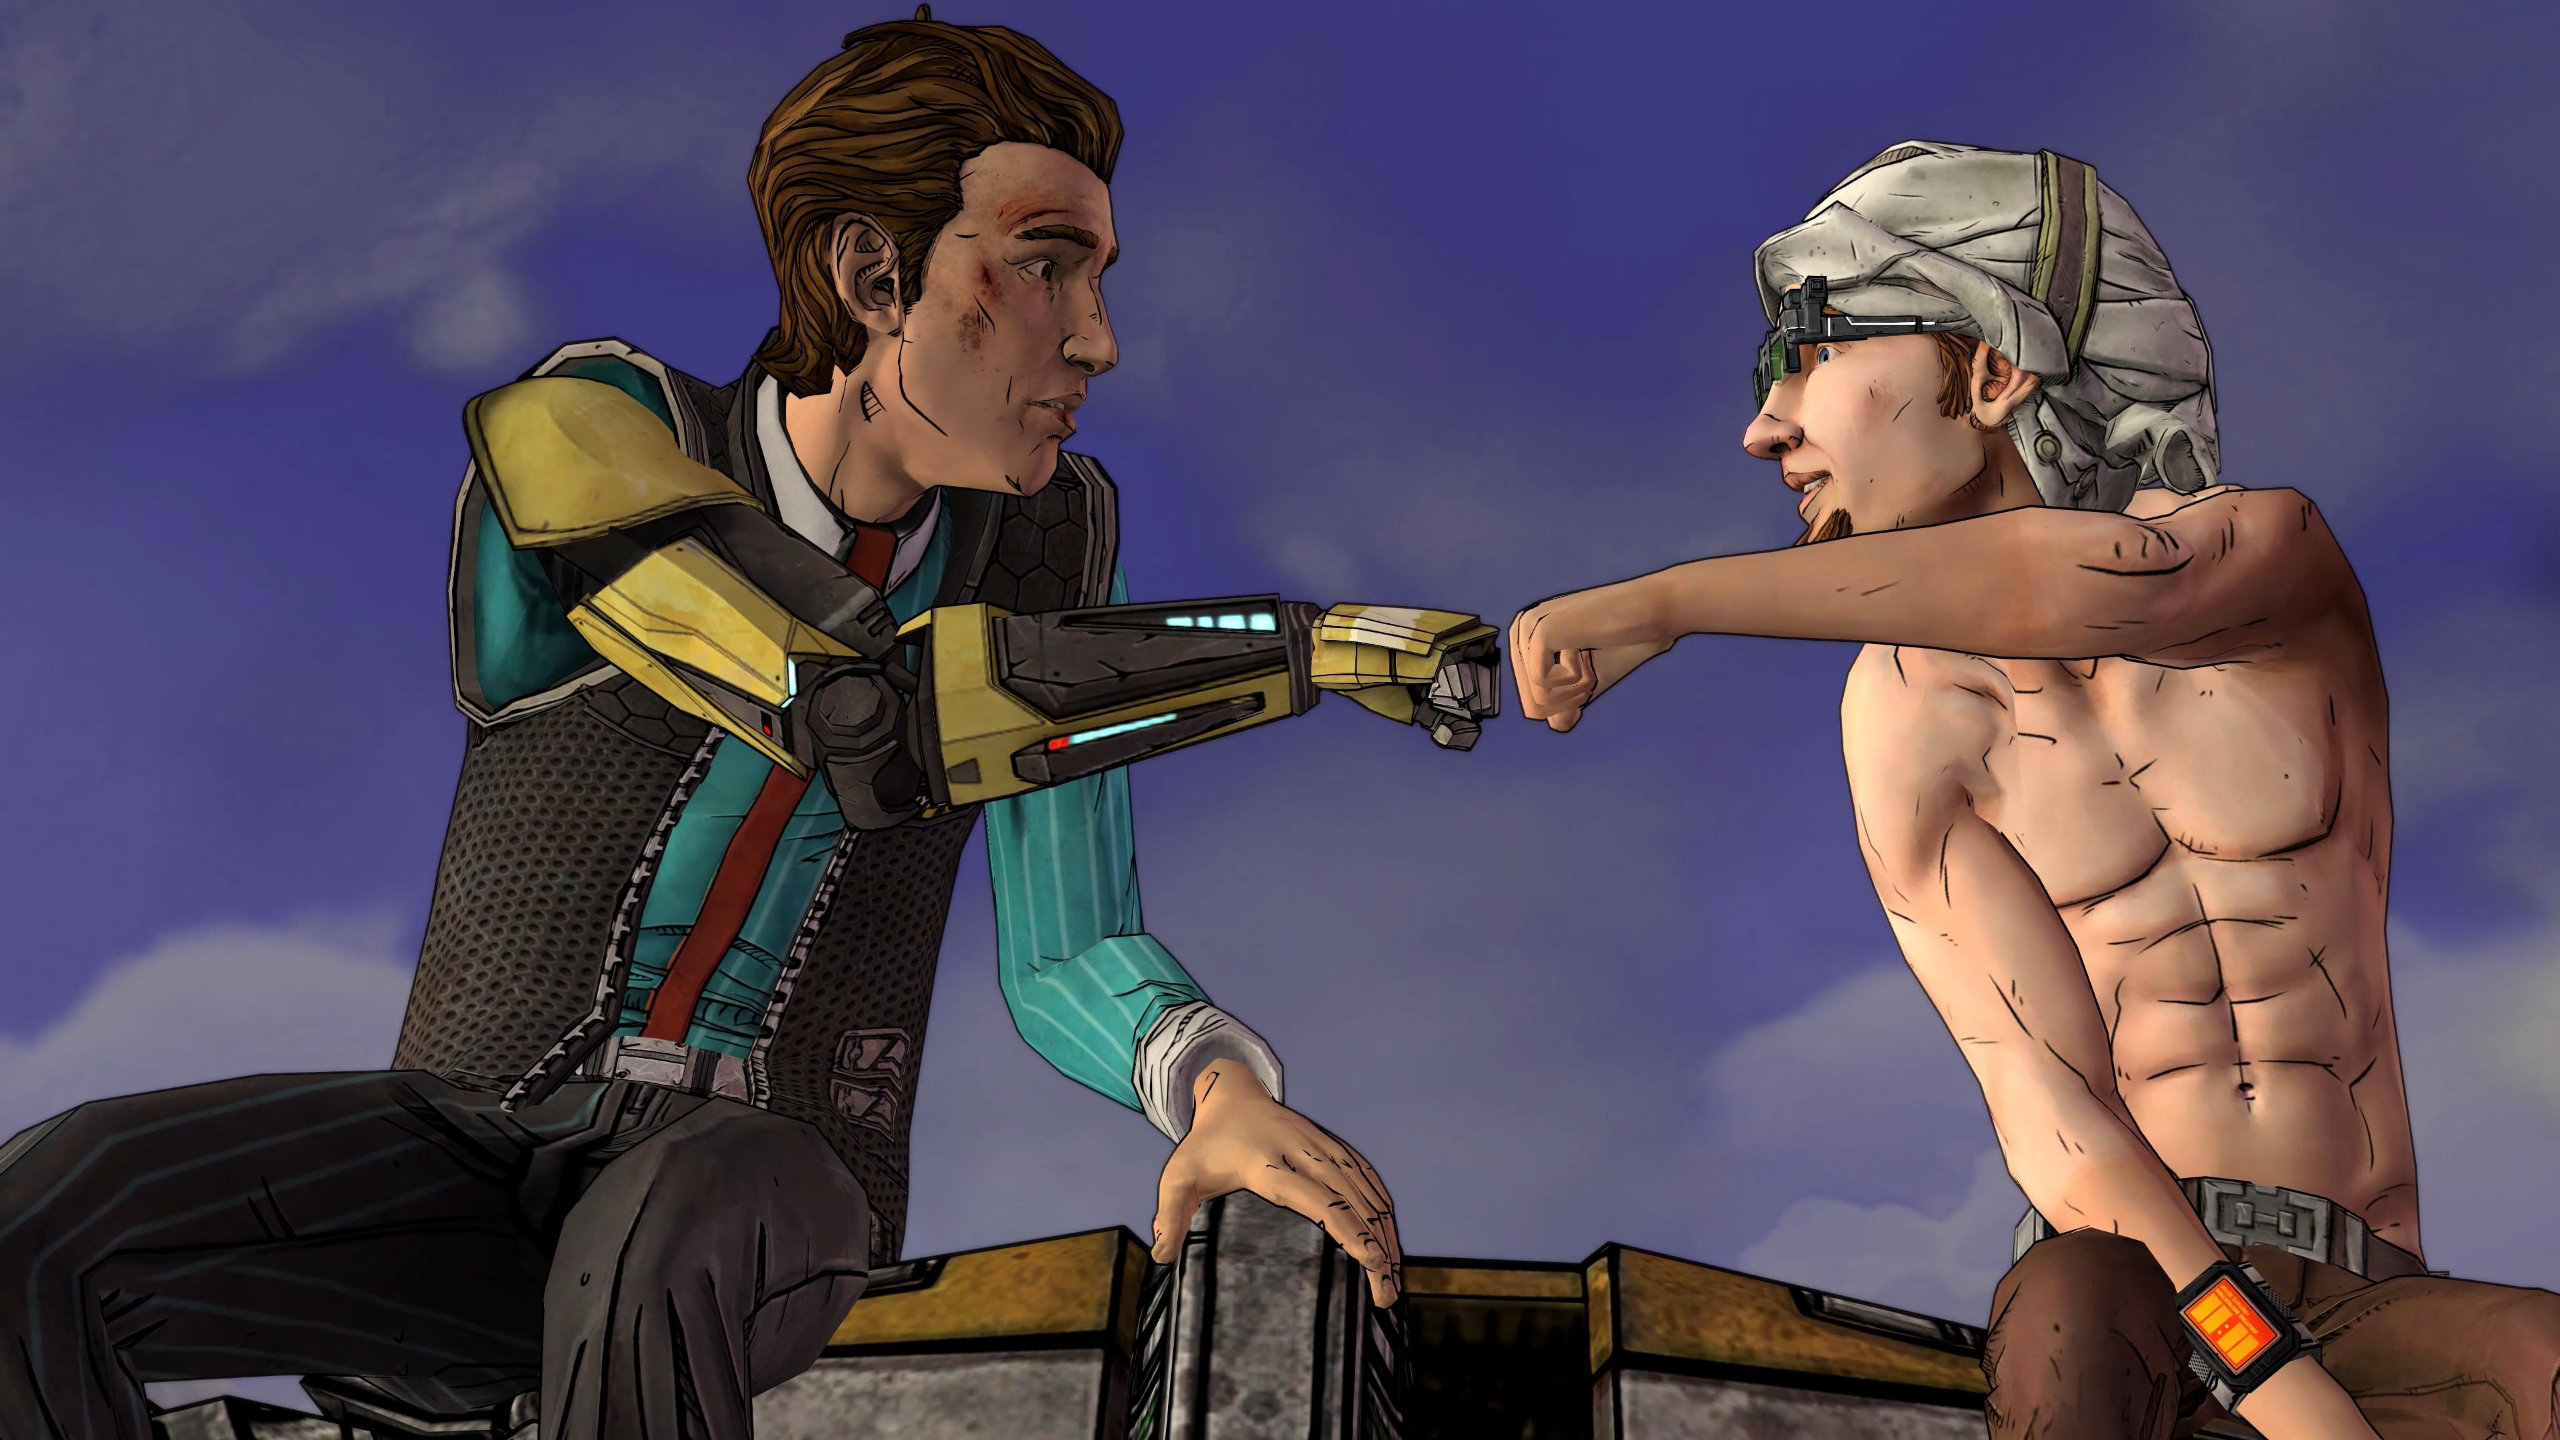 Tales from the Borderlands Screenshot of characters giving each other a fistbump.